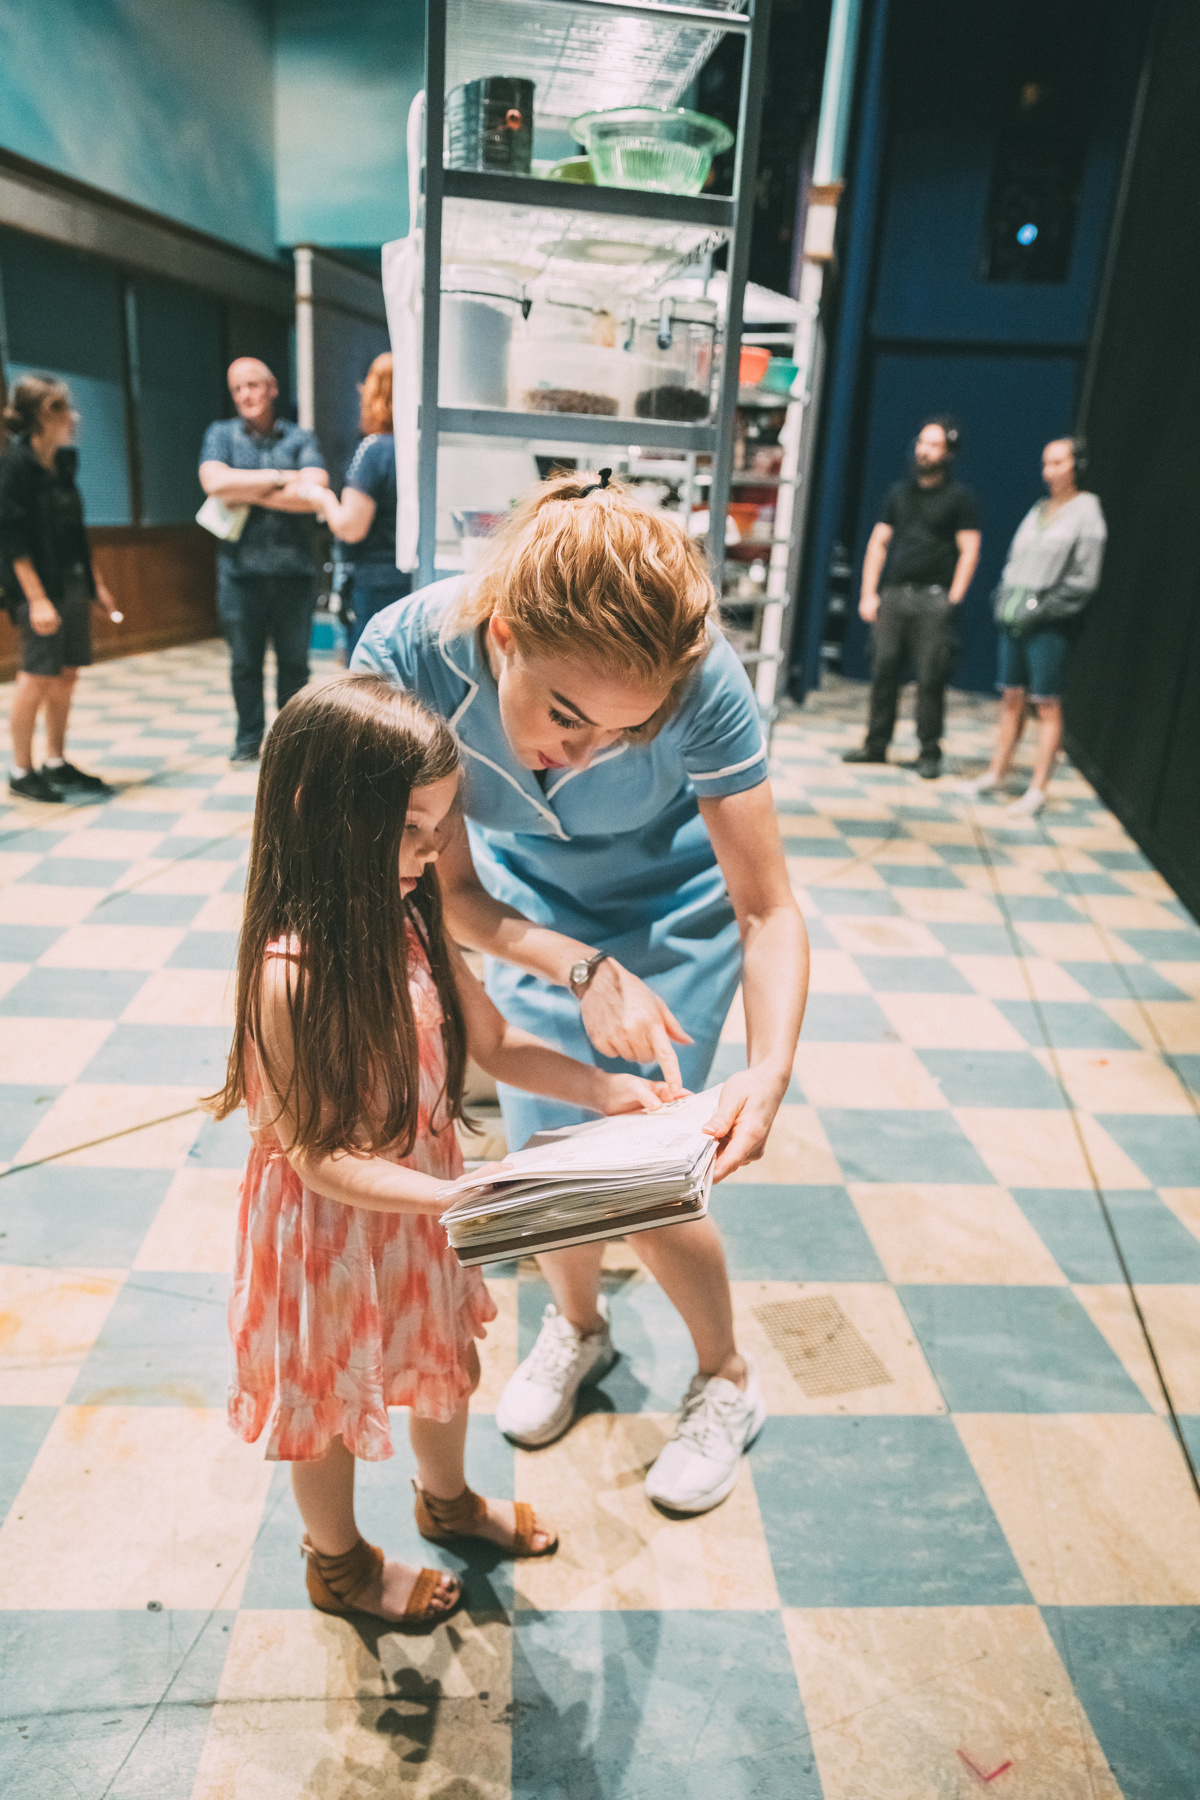 Betsy shares some story time with Waitress' Ella Dane Morgan before the show starts. © Broadway.com • Production photos by Caitlin McNaney